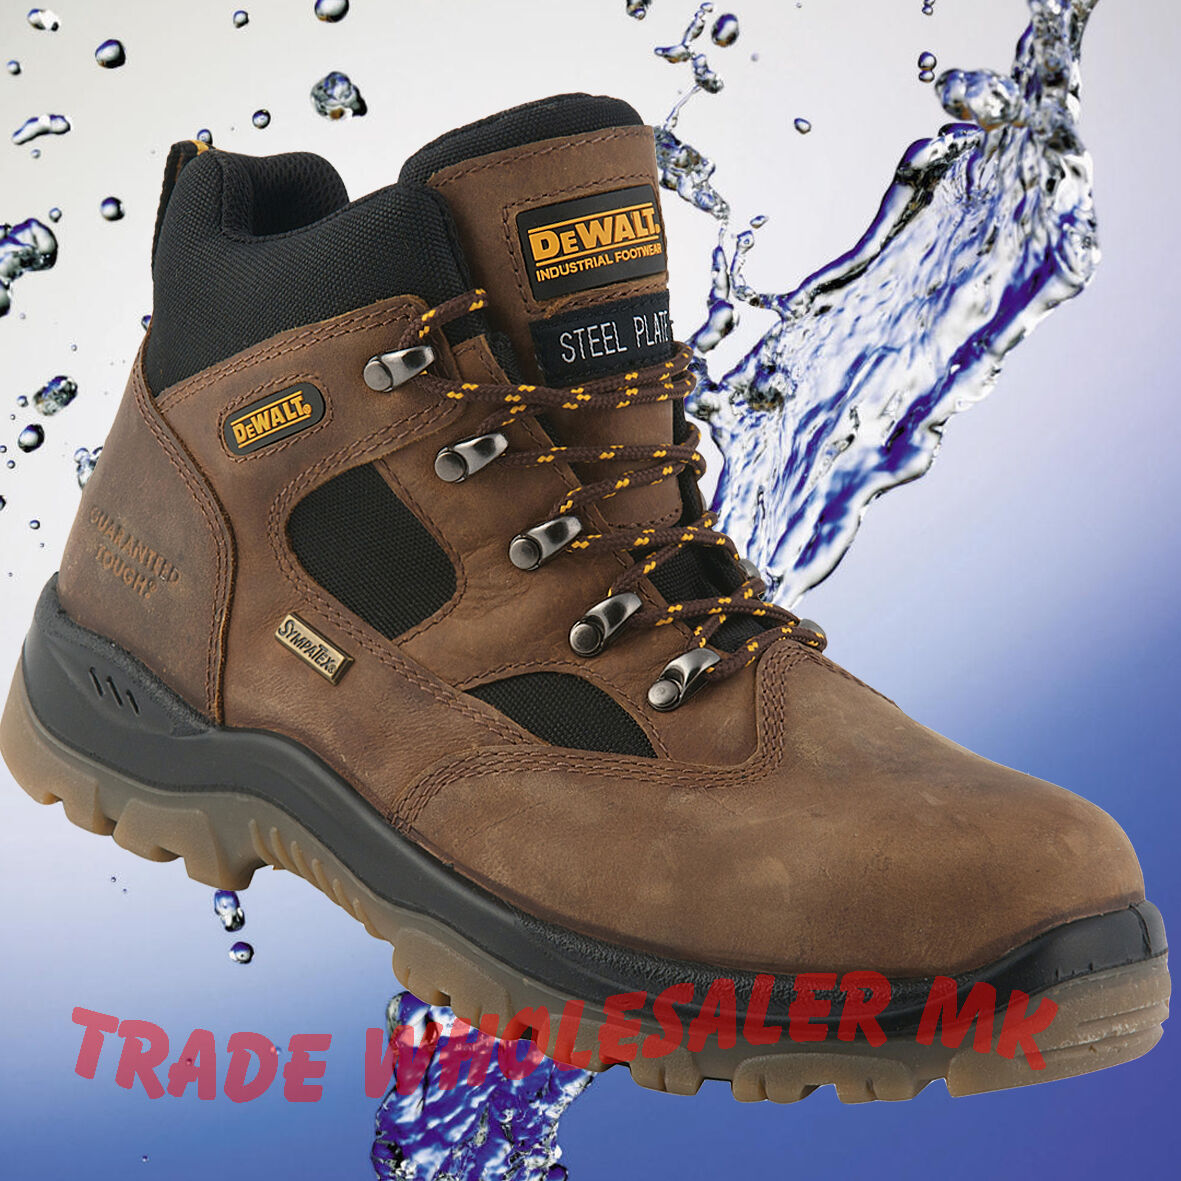 DeWALT Challenger 3 brown S3 waterproof safety boots latest model